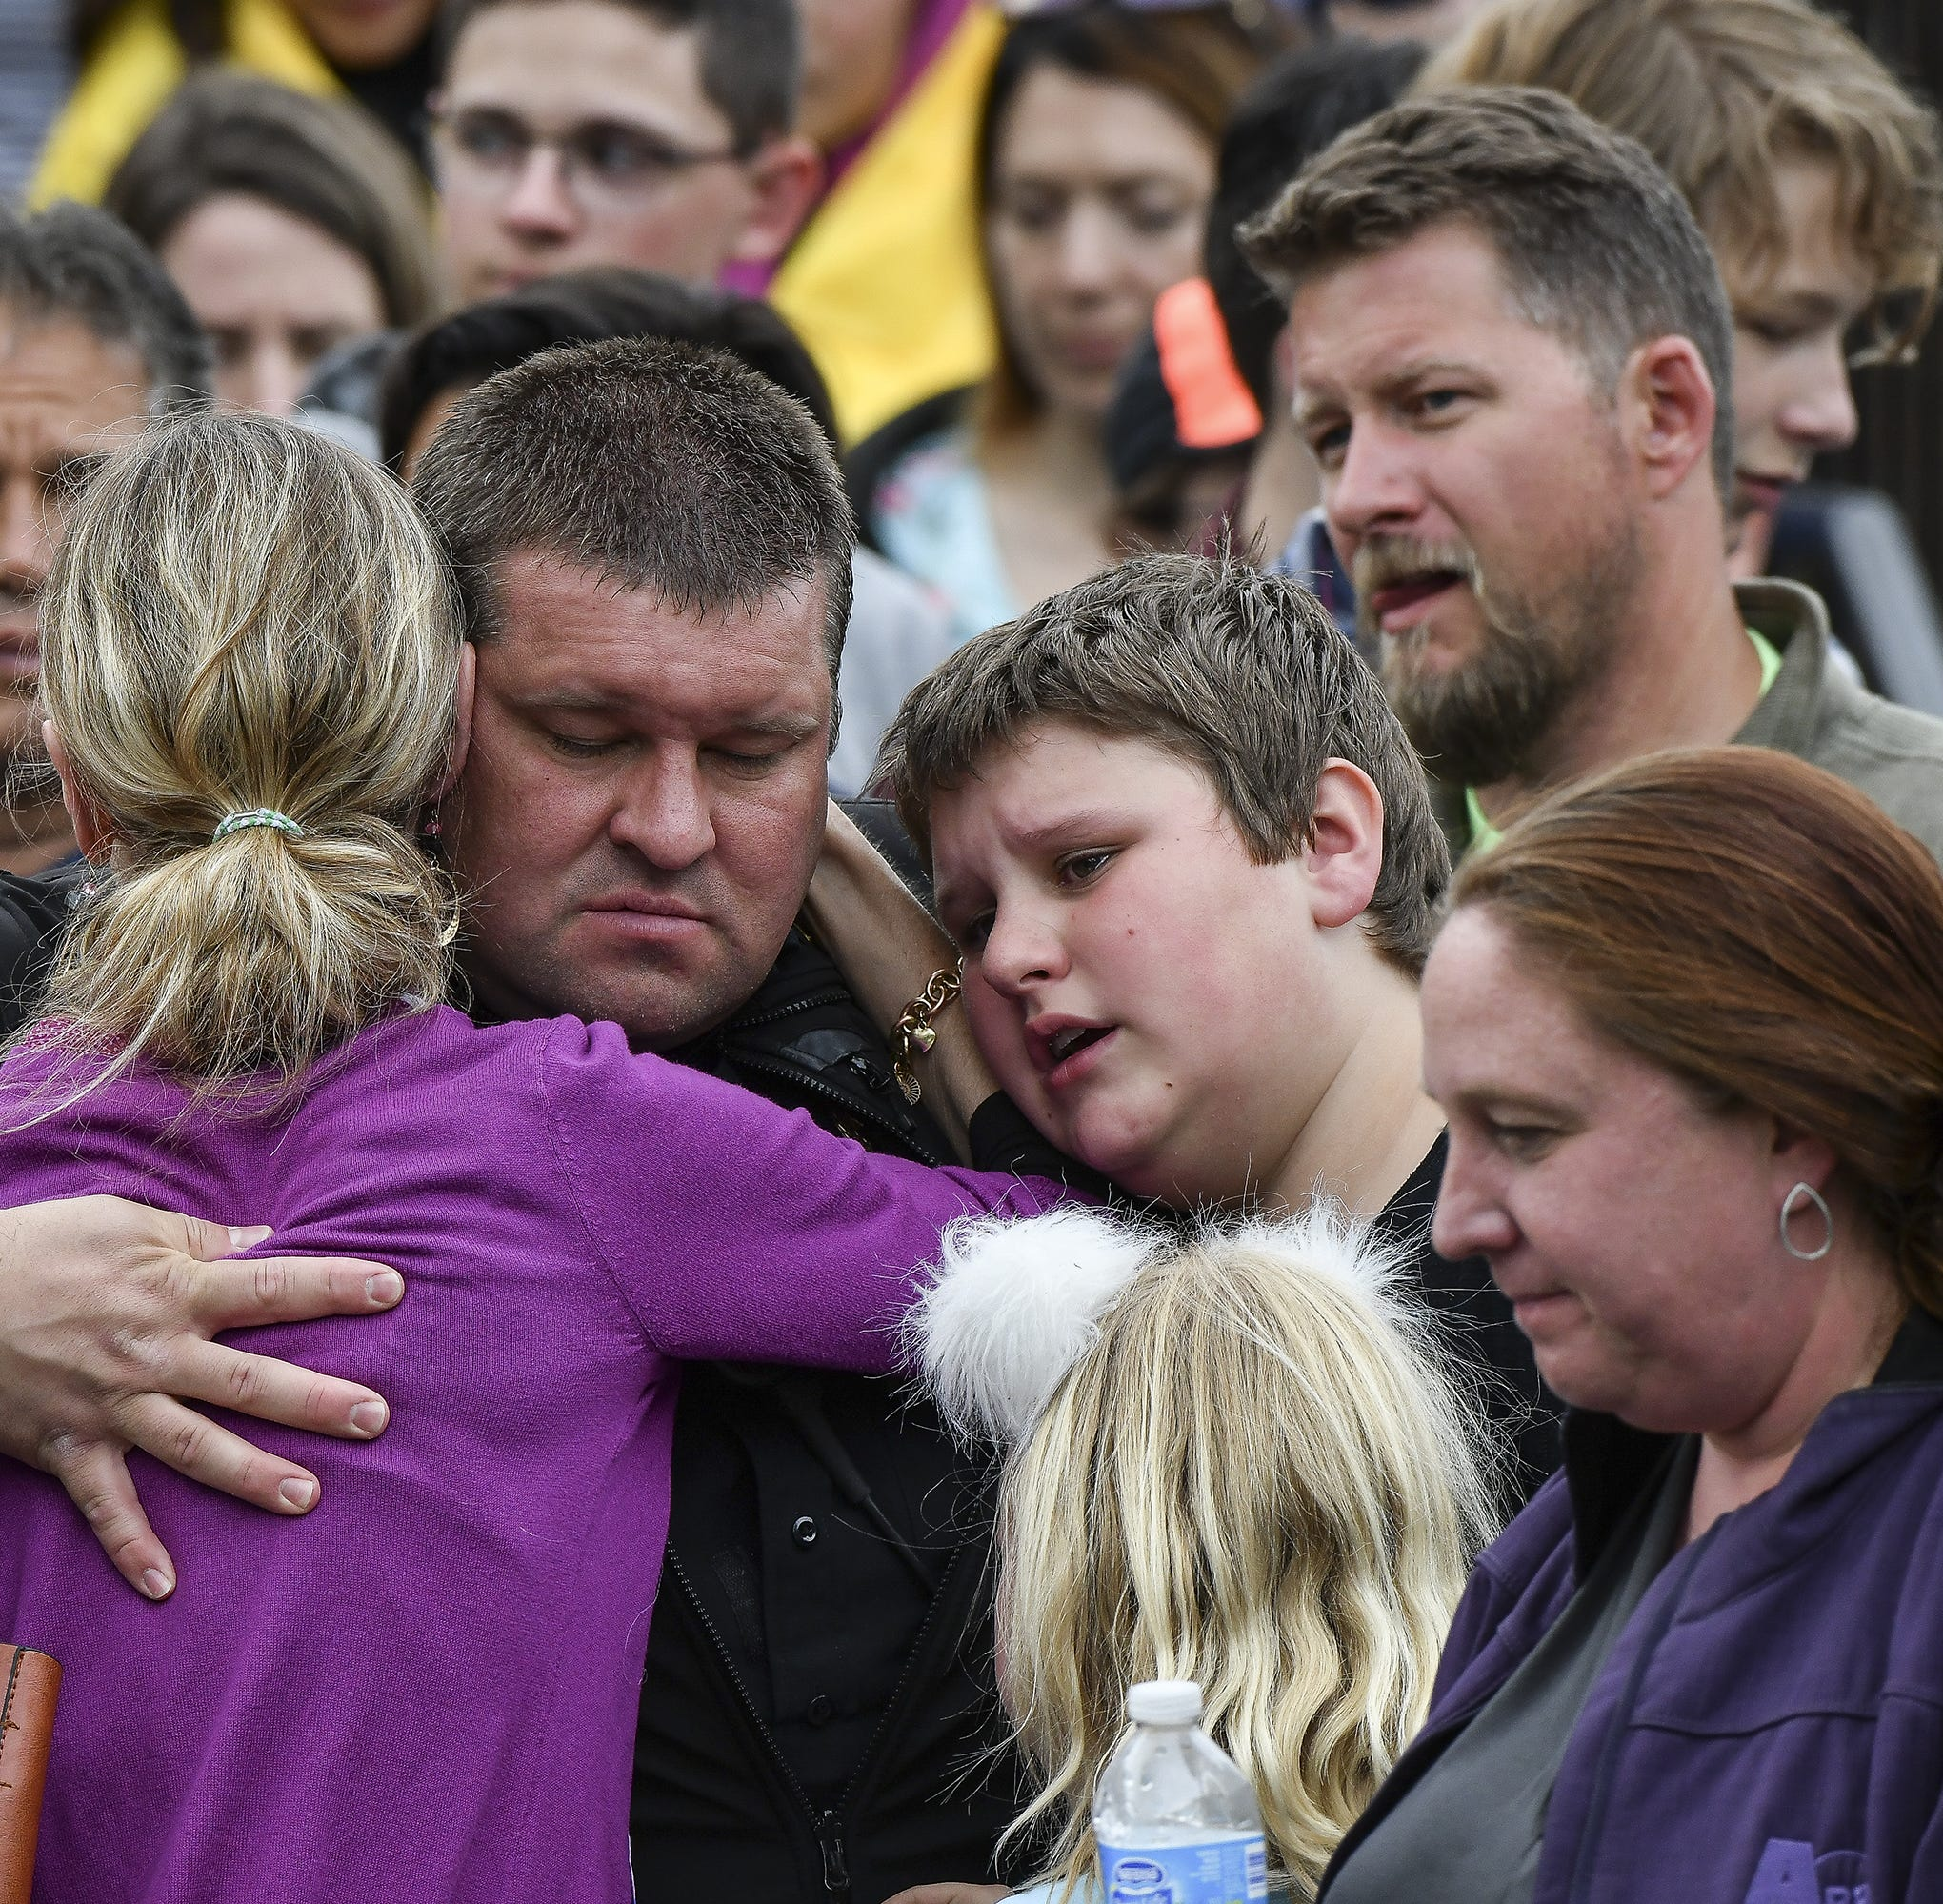 Students and guard lauded for heroism in Colorado school shooting; suspects appear in court